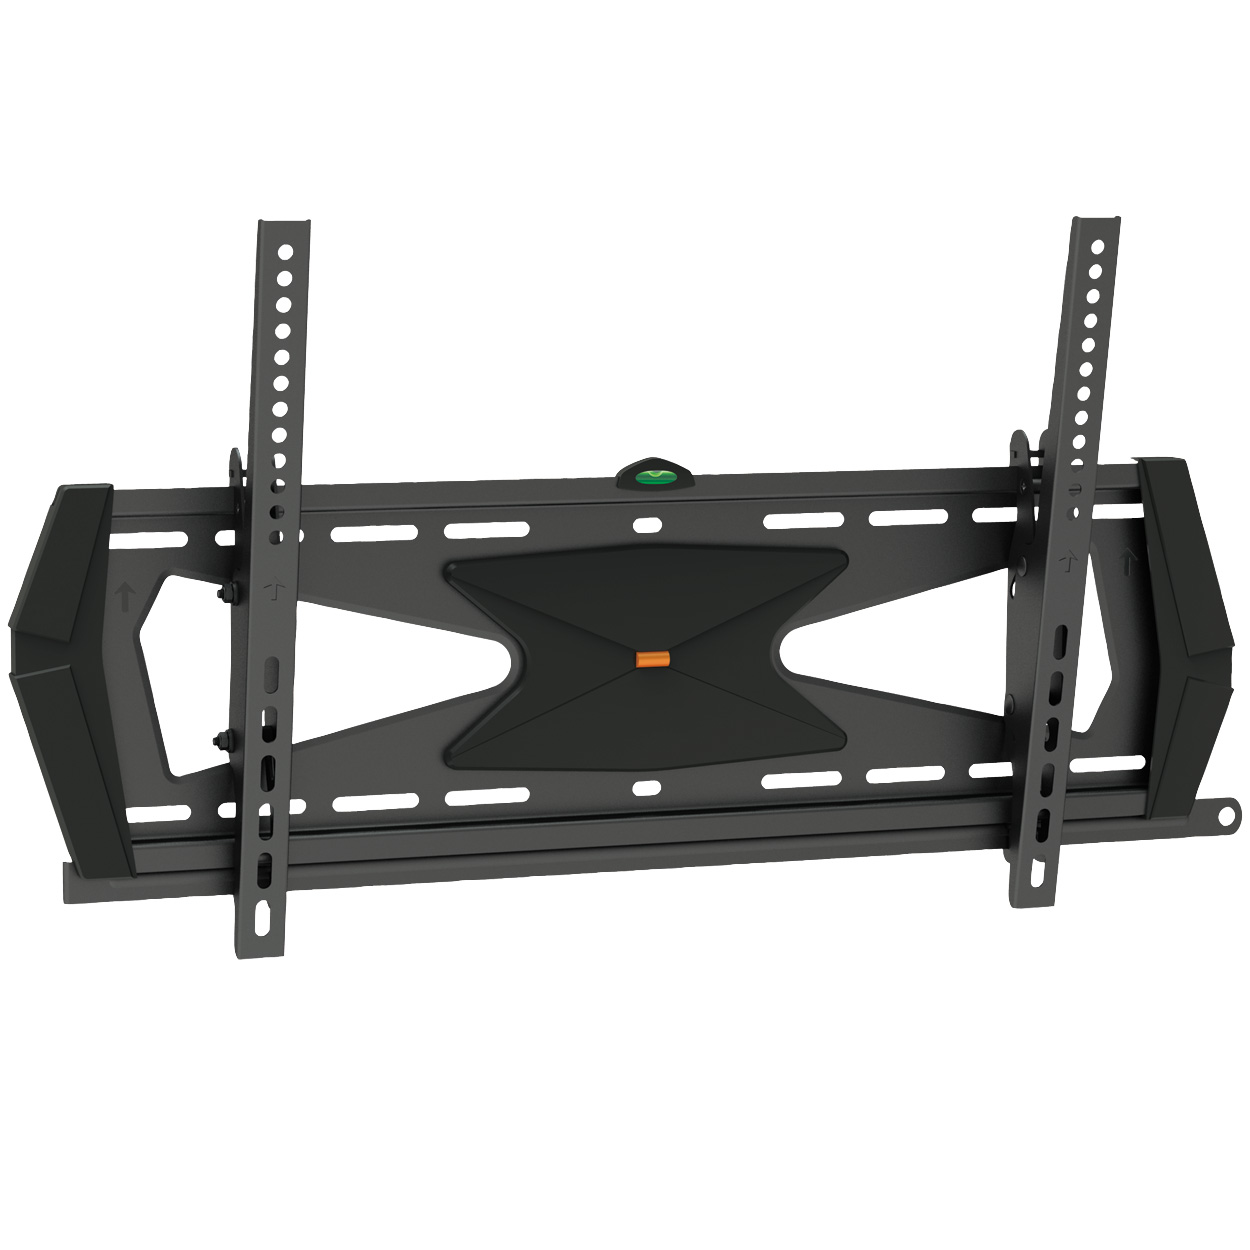 Tilting TV Wall Mount Bracket for 37-70 inch Screen with Anti-Theft Function (Max 88lbs)